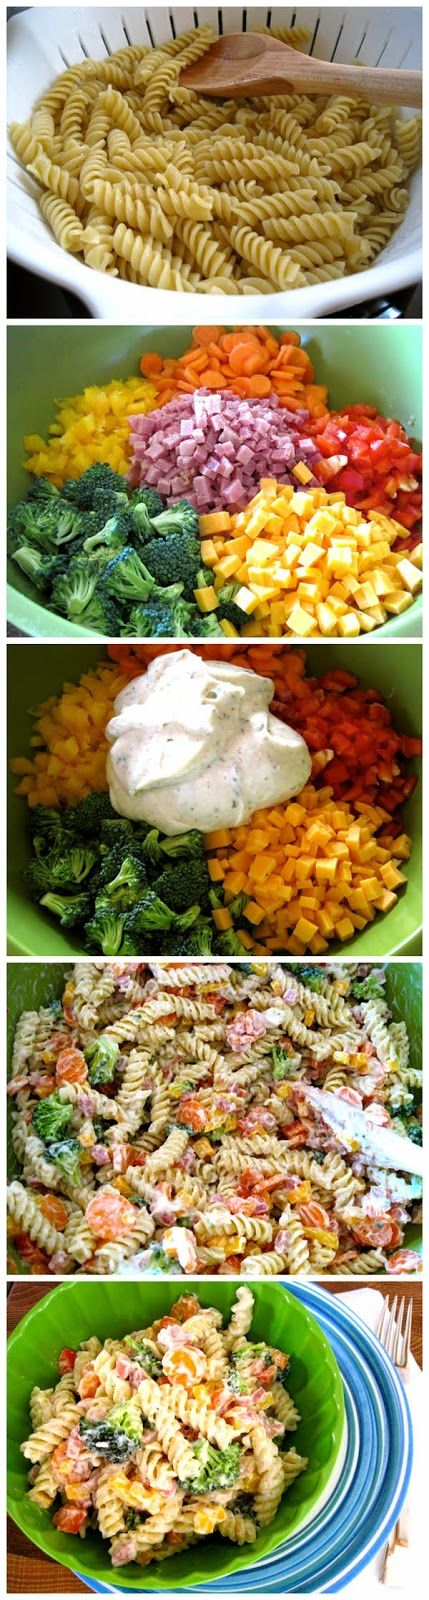 Ranch Pasta Salad - Best Food Cloud